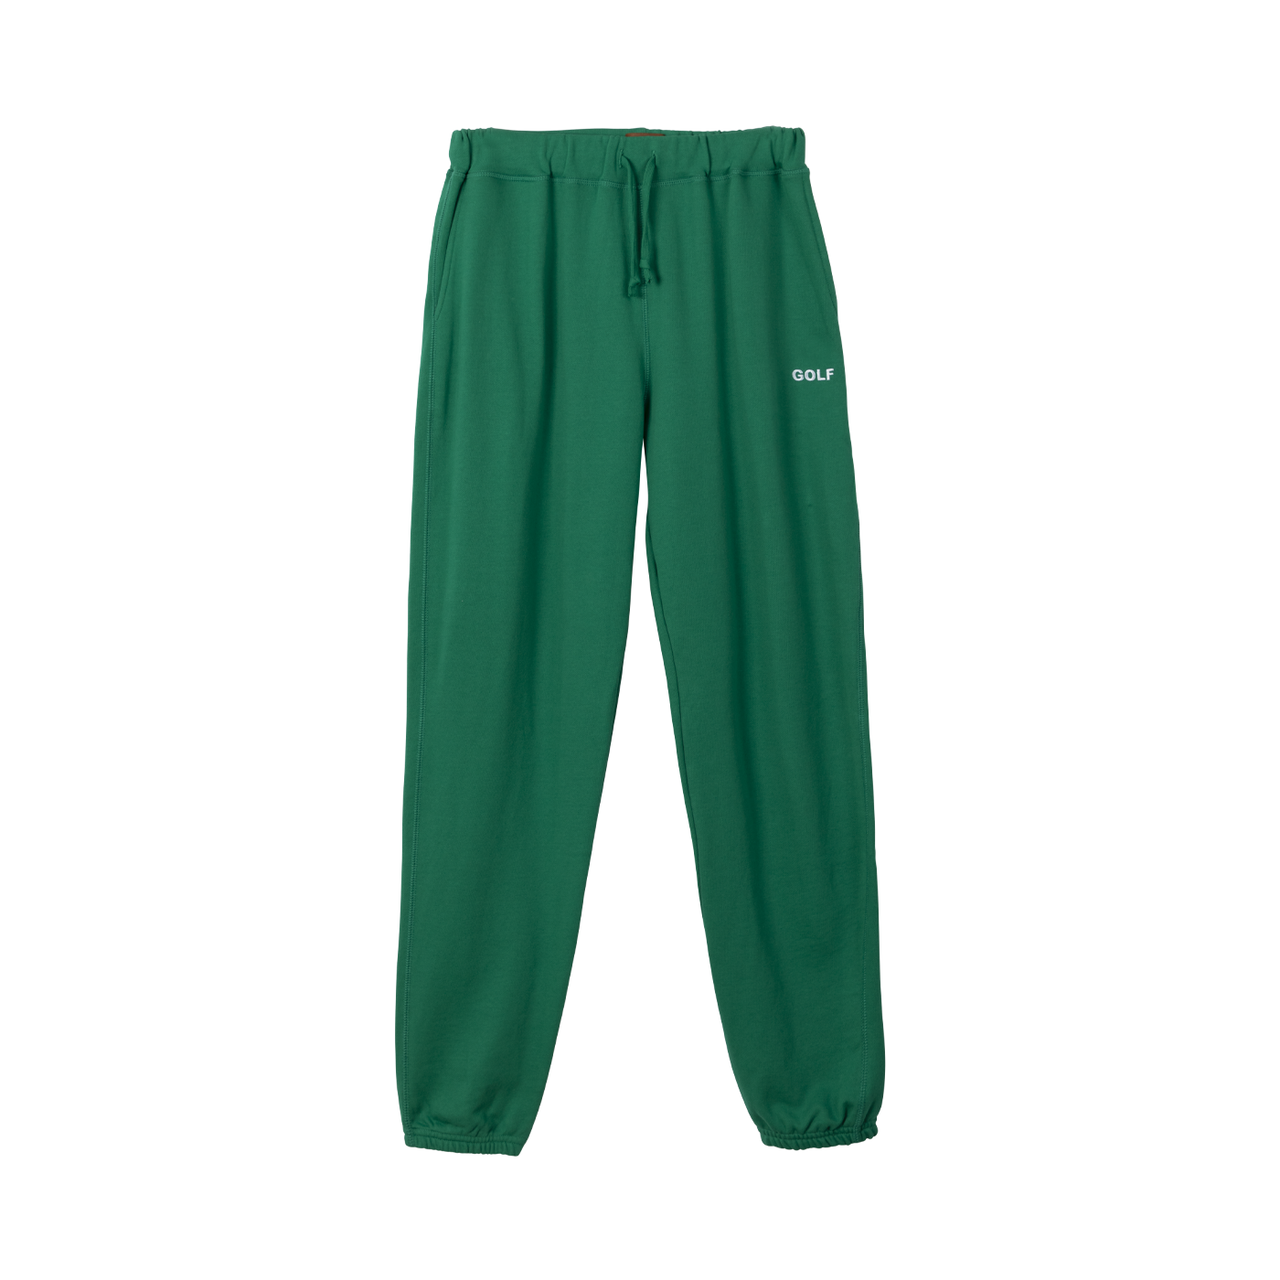 GOLF LOGO EMBROIDERED SWEATPANTS - GREEN by GOLF WANG